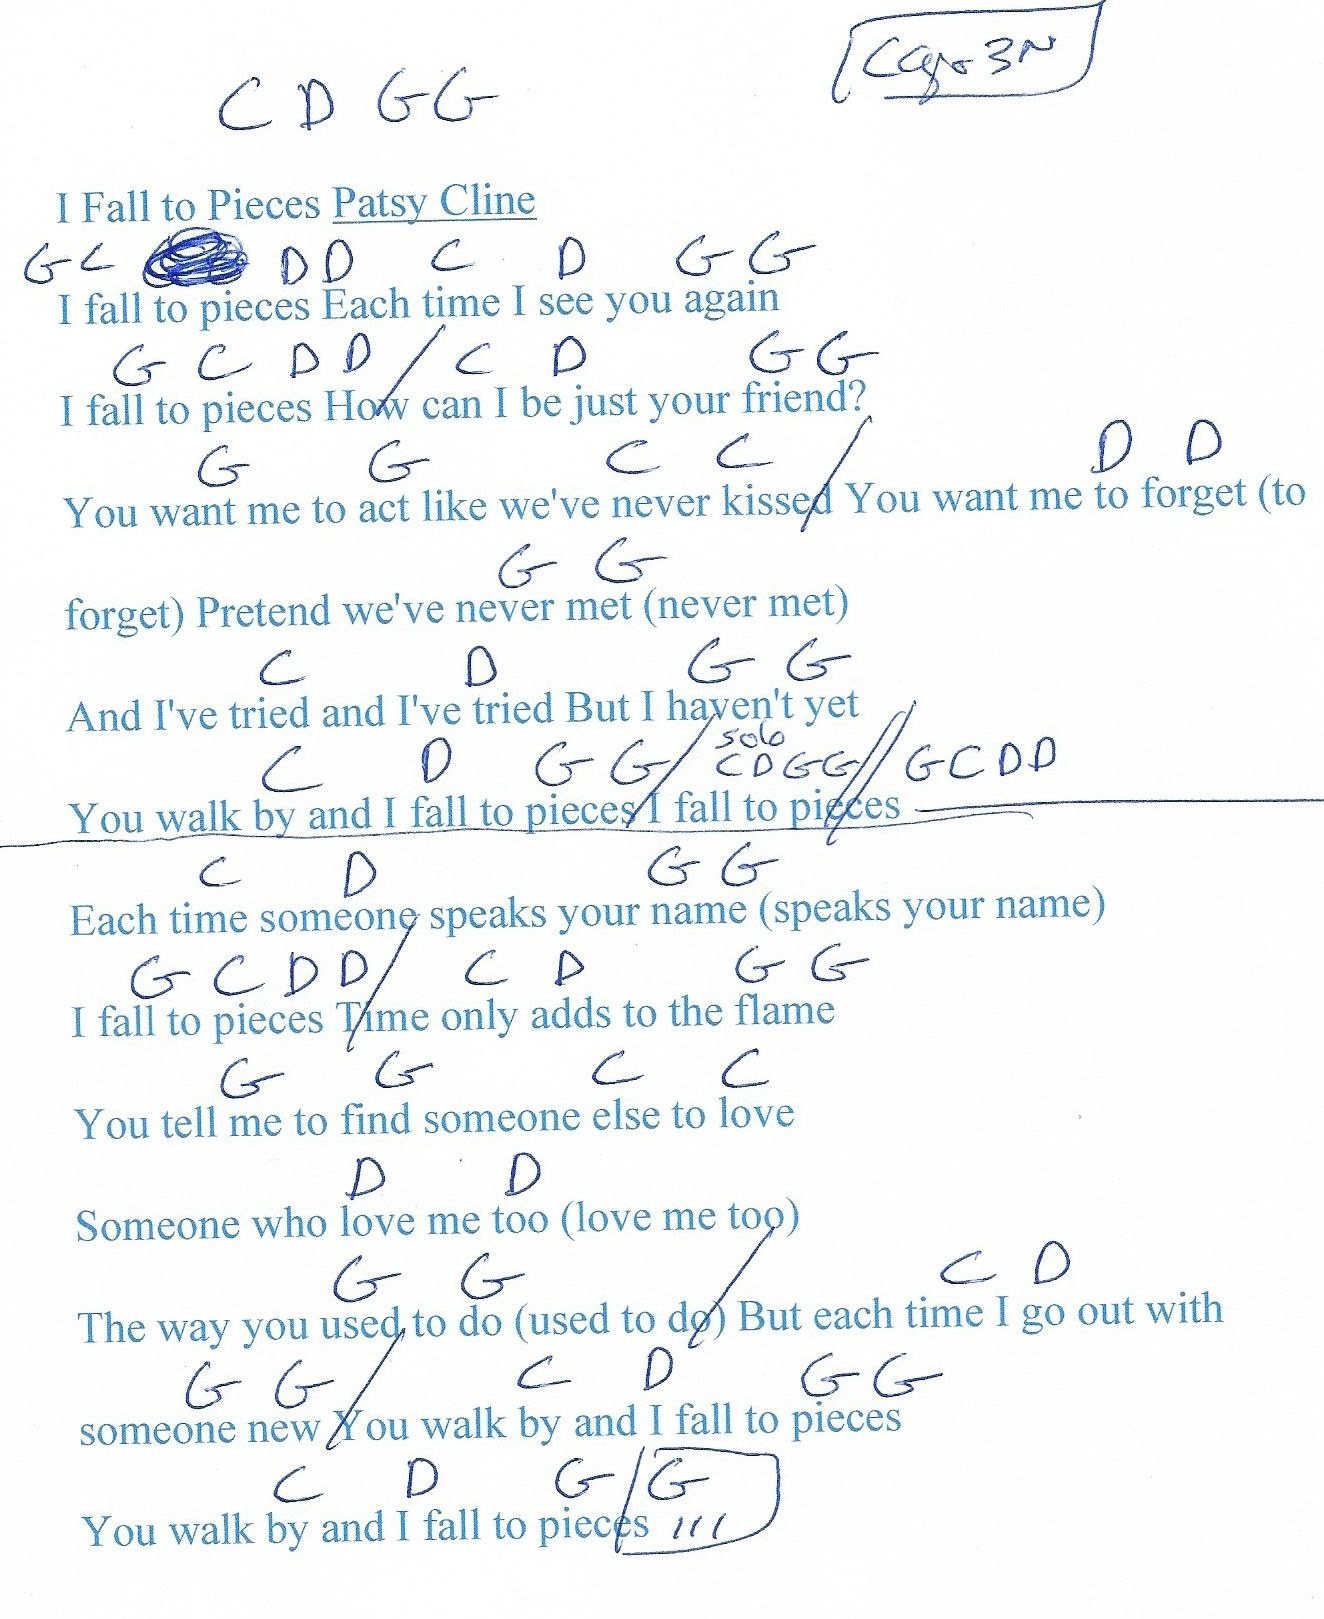 I Fall To Pieces Patsy Cline Guitar Chord Chart Capo 3rd Fret Chord Chart Guitar Chord Chart I Fall To Pieces